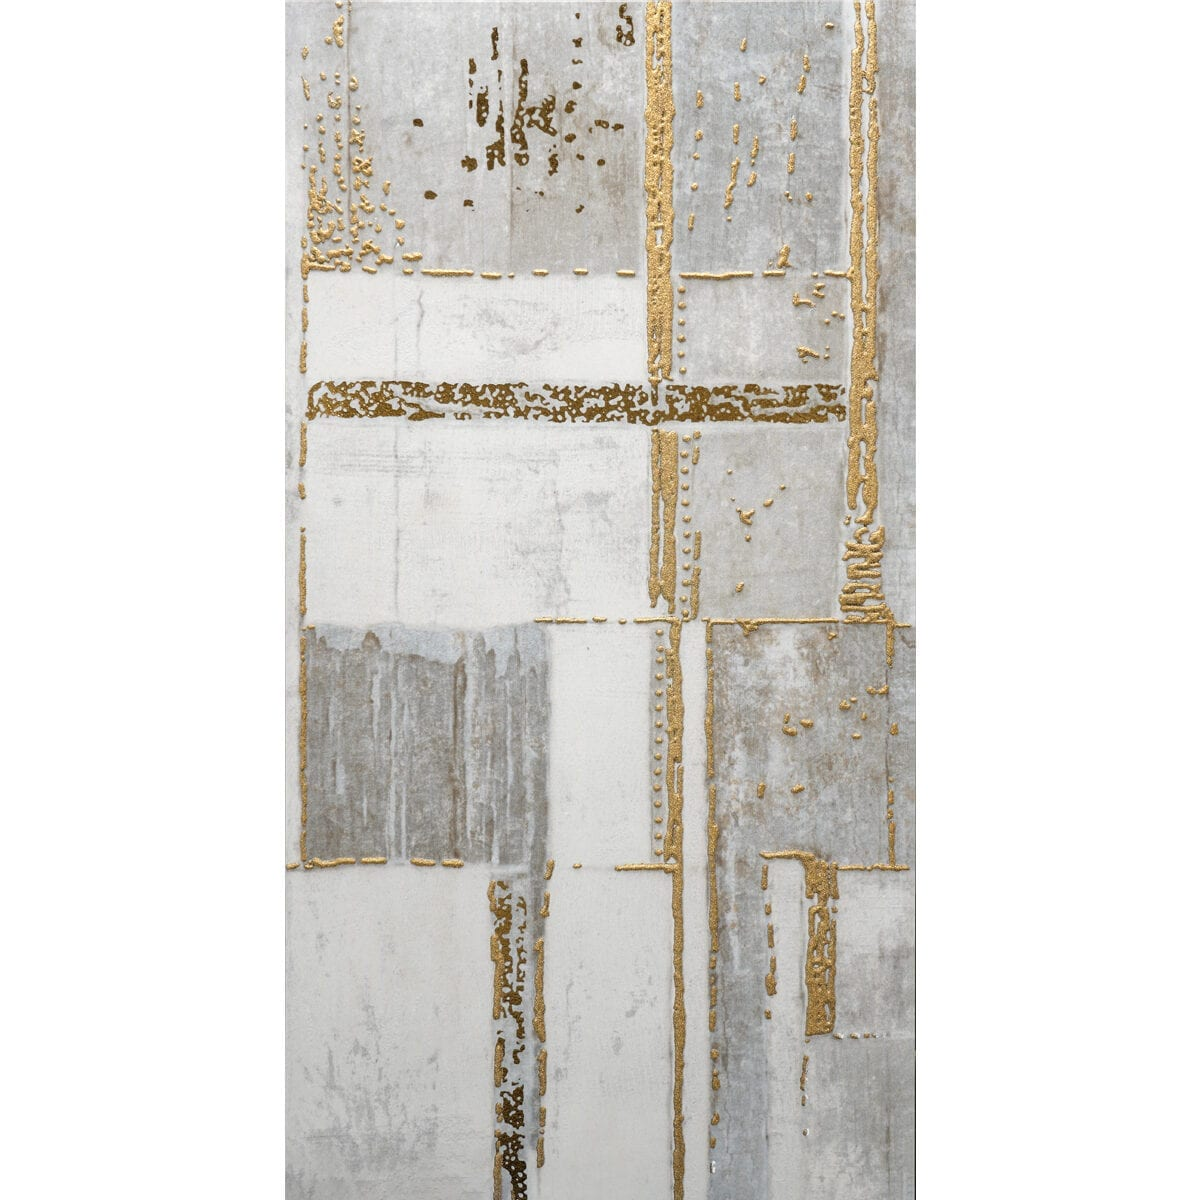 Giselle grey gold 12x24 D50600